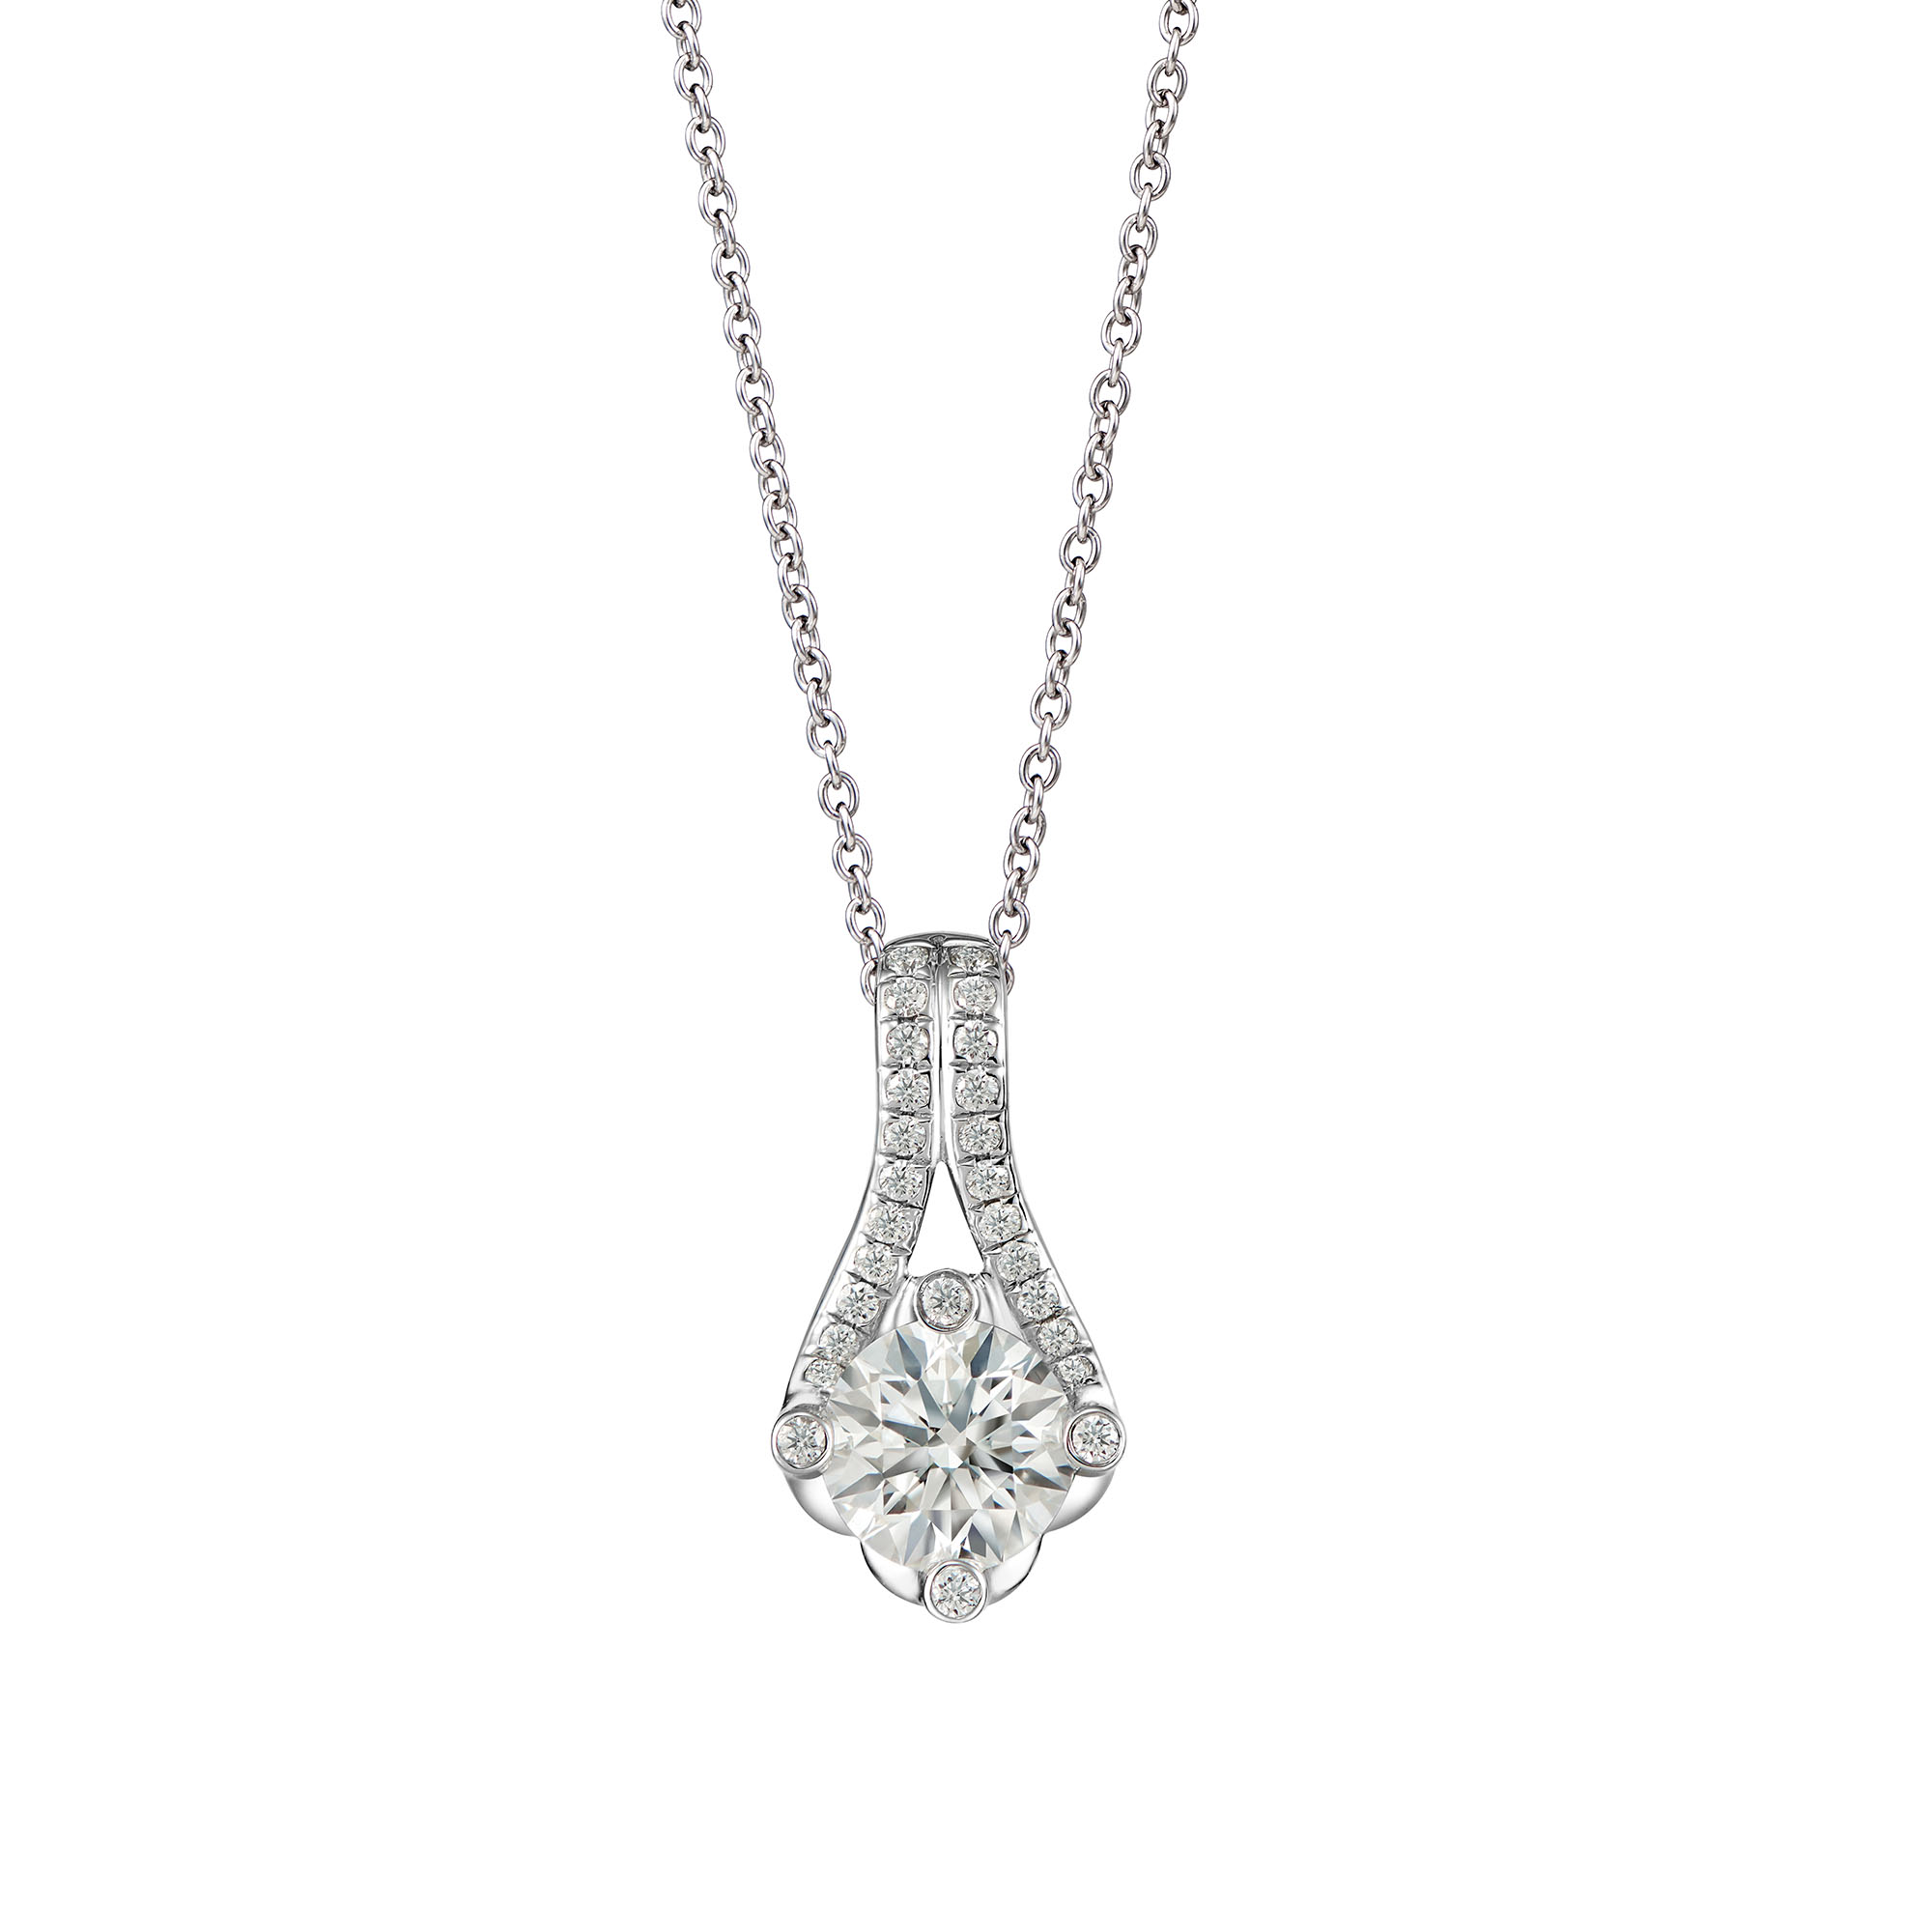 Forevermark Cornerstones Diamond Necklace